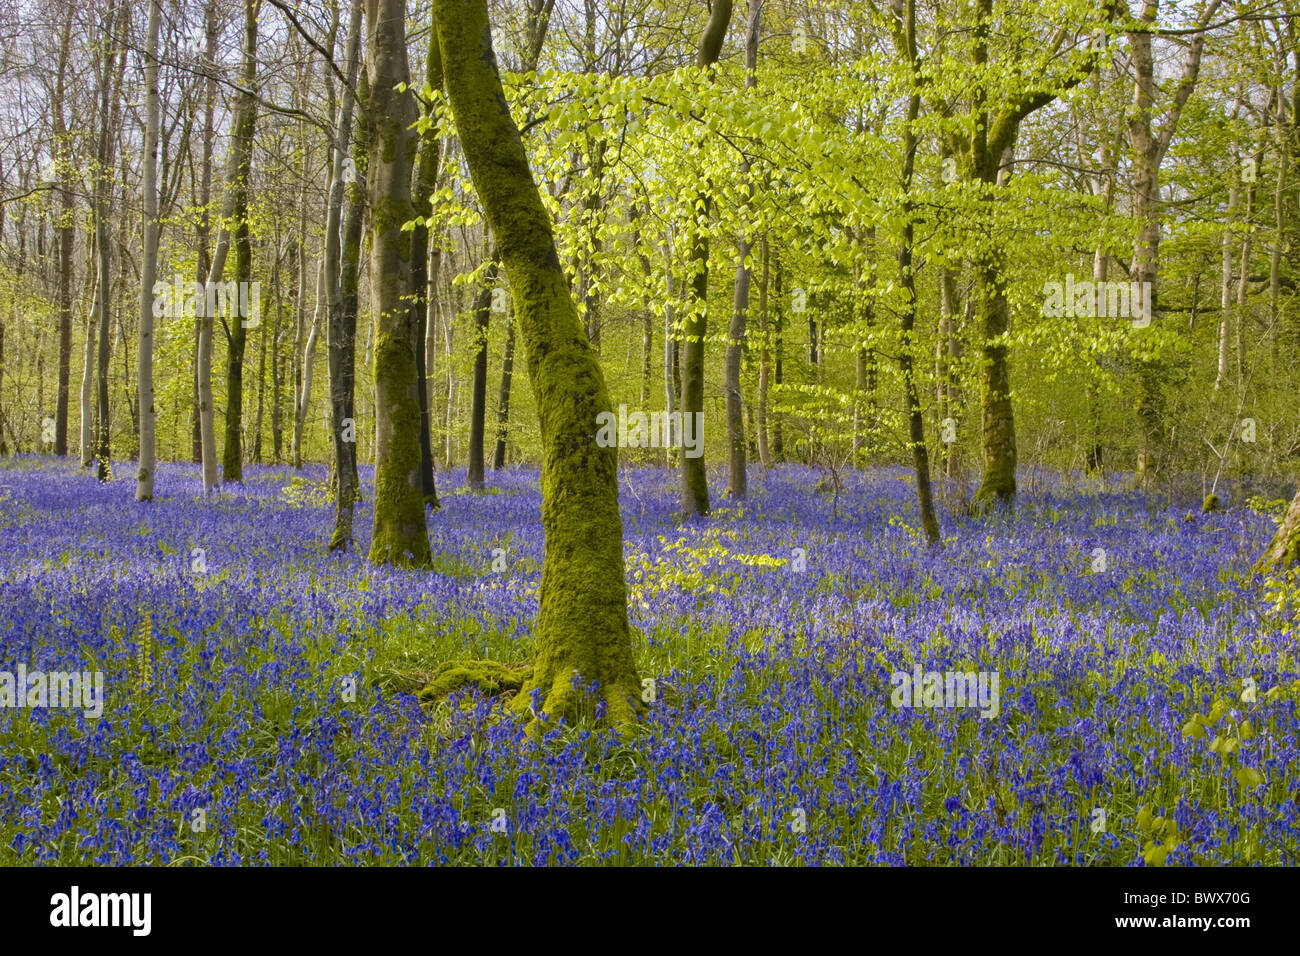 Beech Fagus Sylvatica Auld man's bell Bloom Blooms Blooming Blue Bluebell Bluebells Great Britain Britain British Colouful Stock Photo